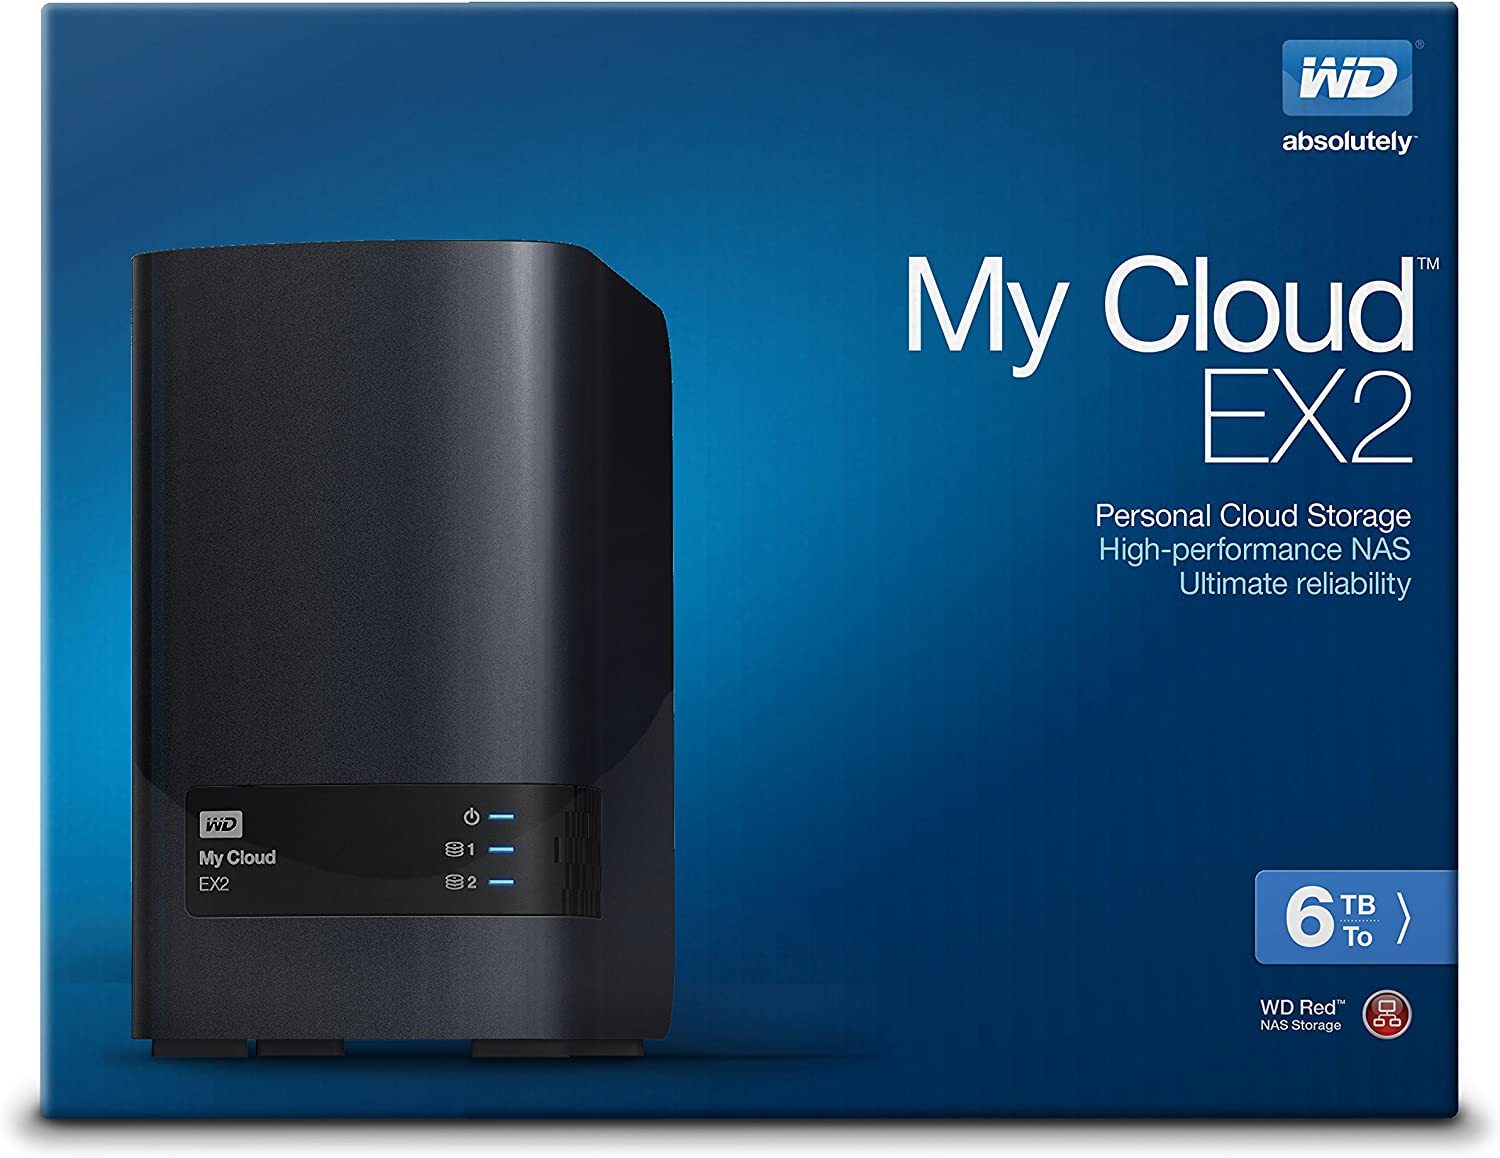 Wd My Cloud Ex2 6 Tb Reliable Network Attached Storage Featuring Wd Red Drives Amazon Ca Computers Tablets